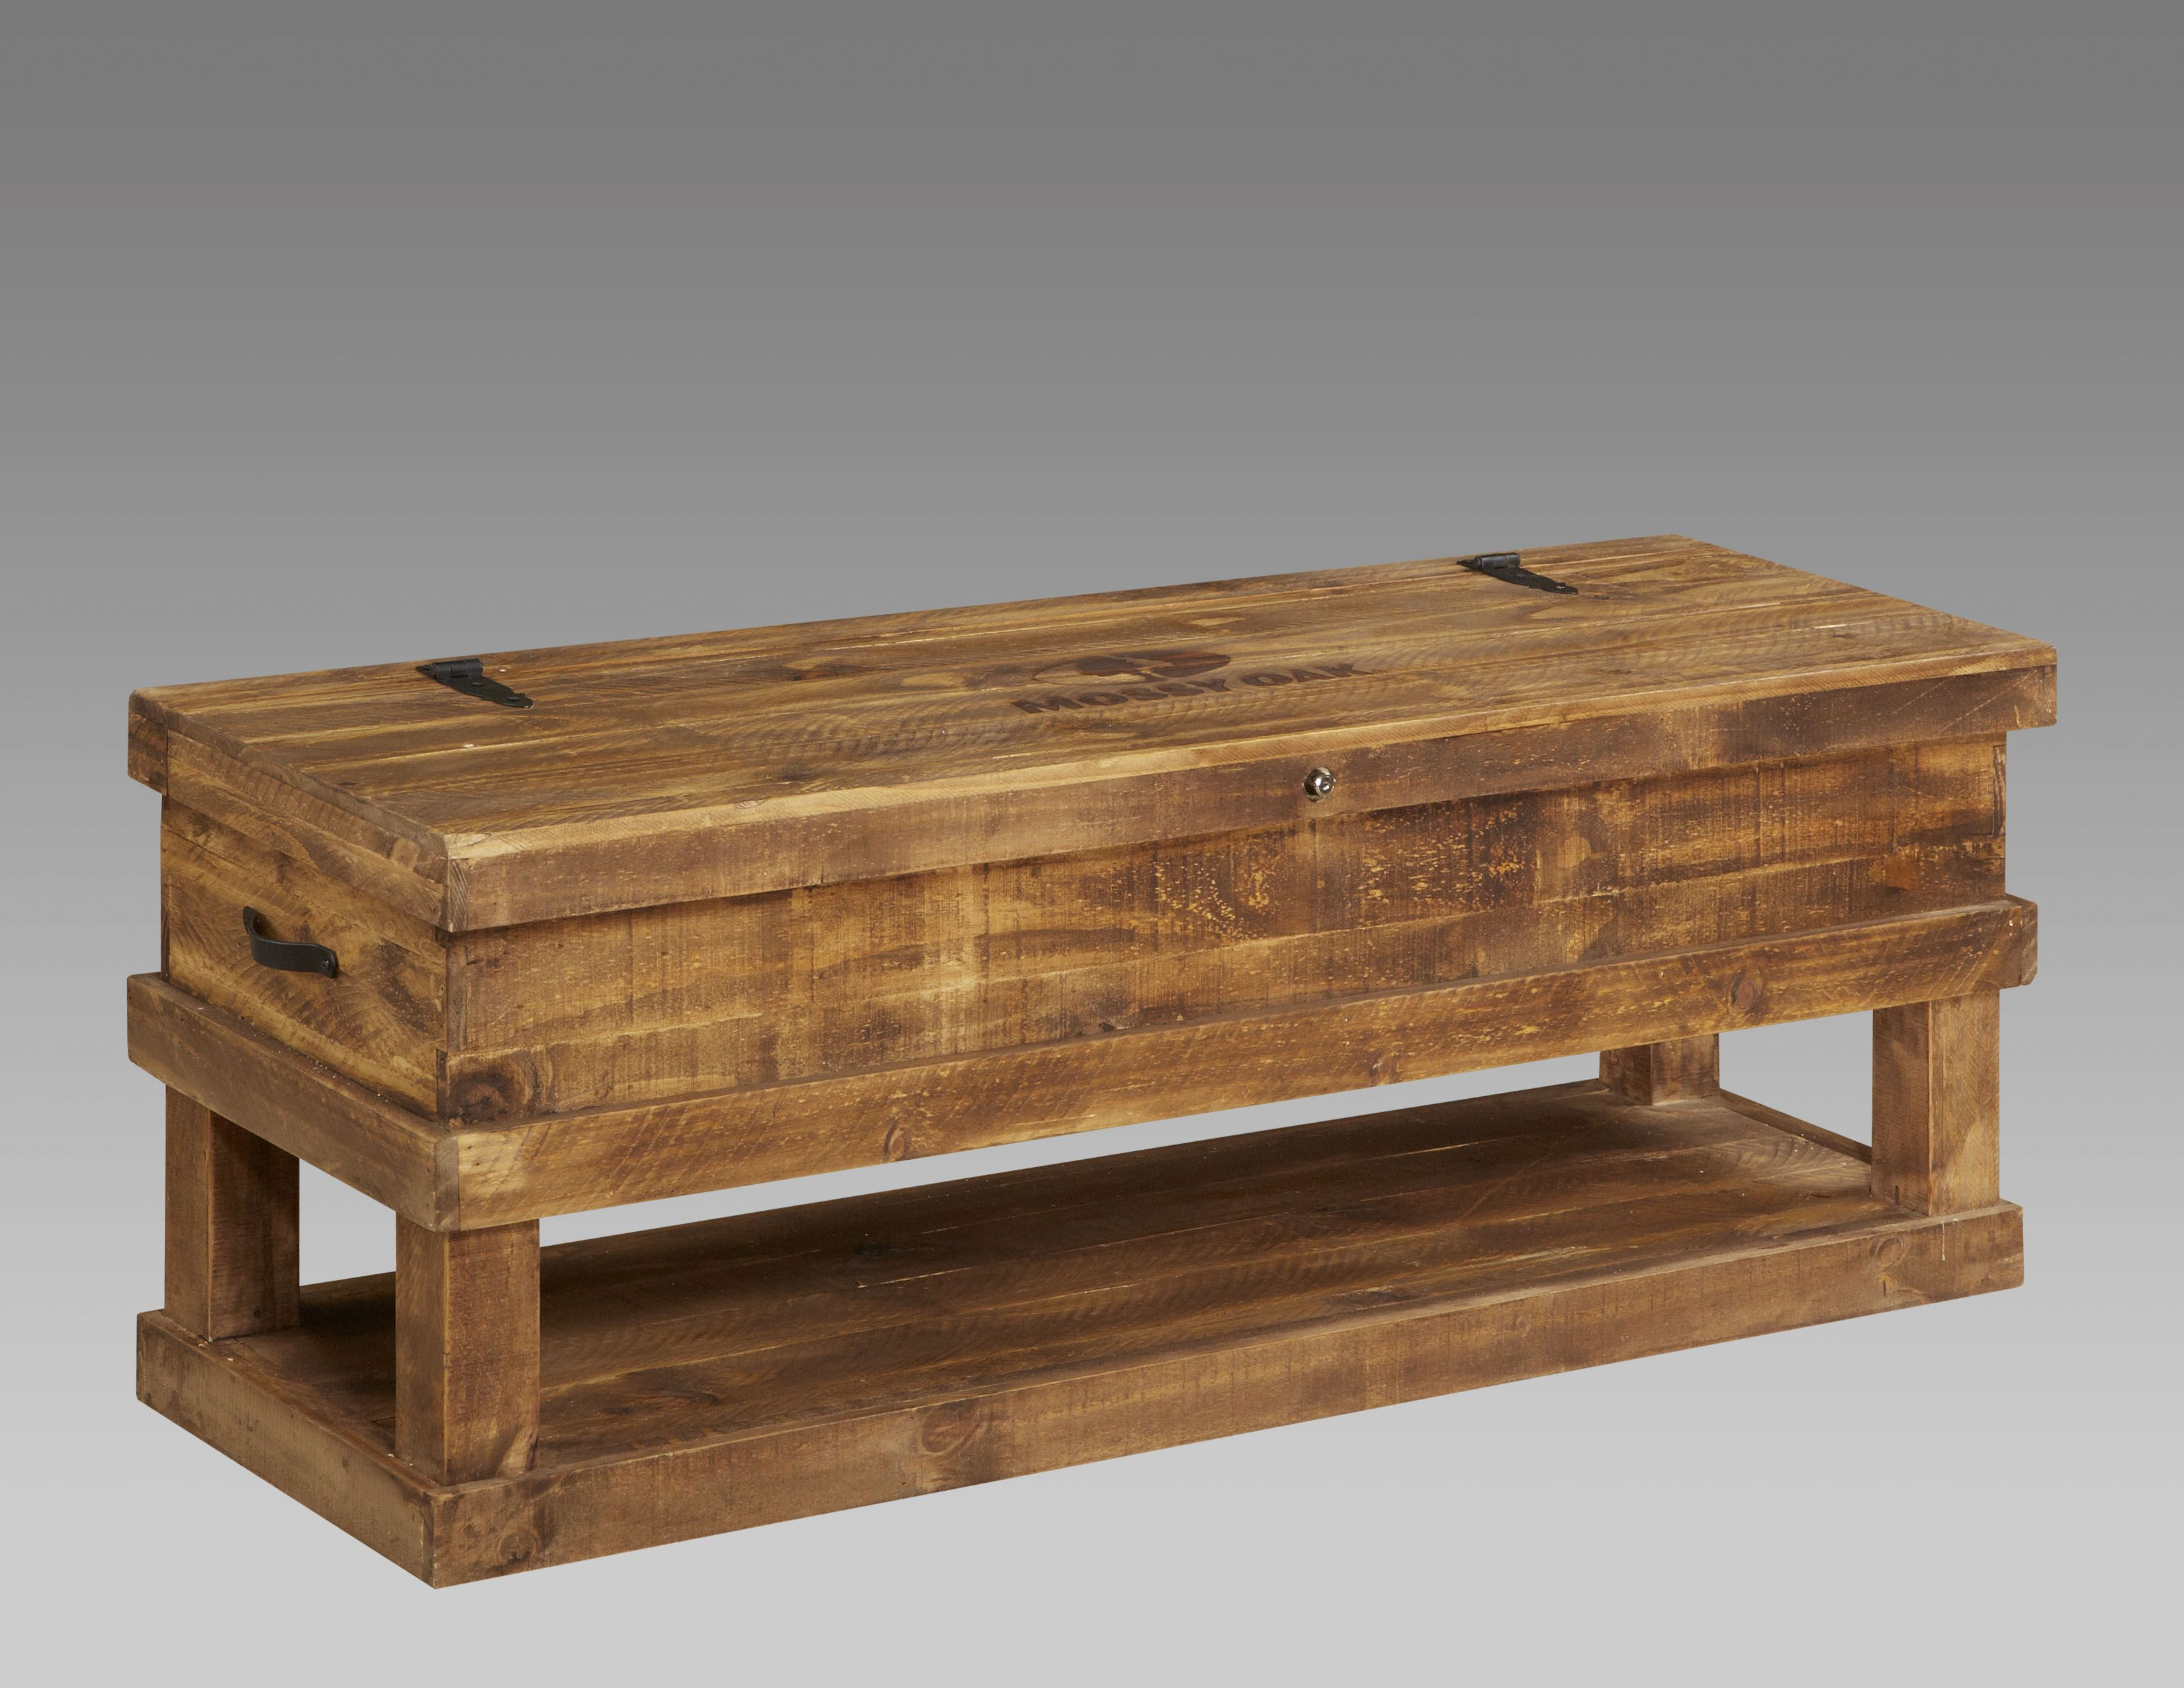 Mossy Oak Cocktail Table With Gun Storage Mossy Oak Lifestyle with regard to measurements 3300 X 2550